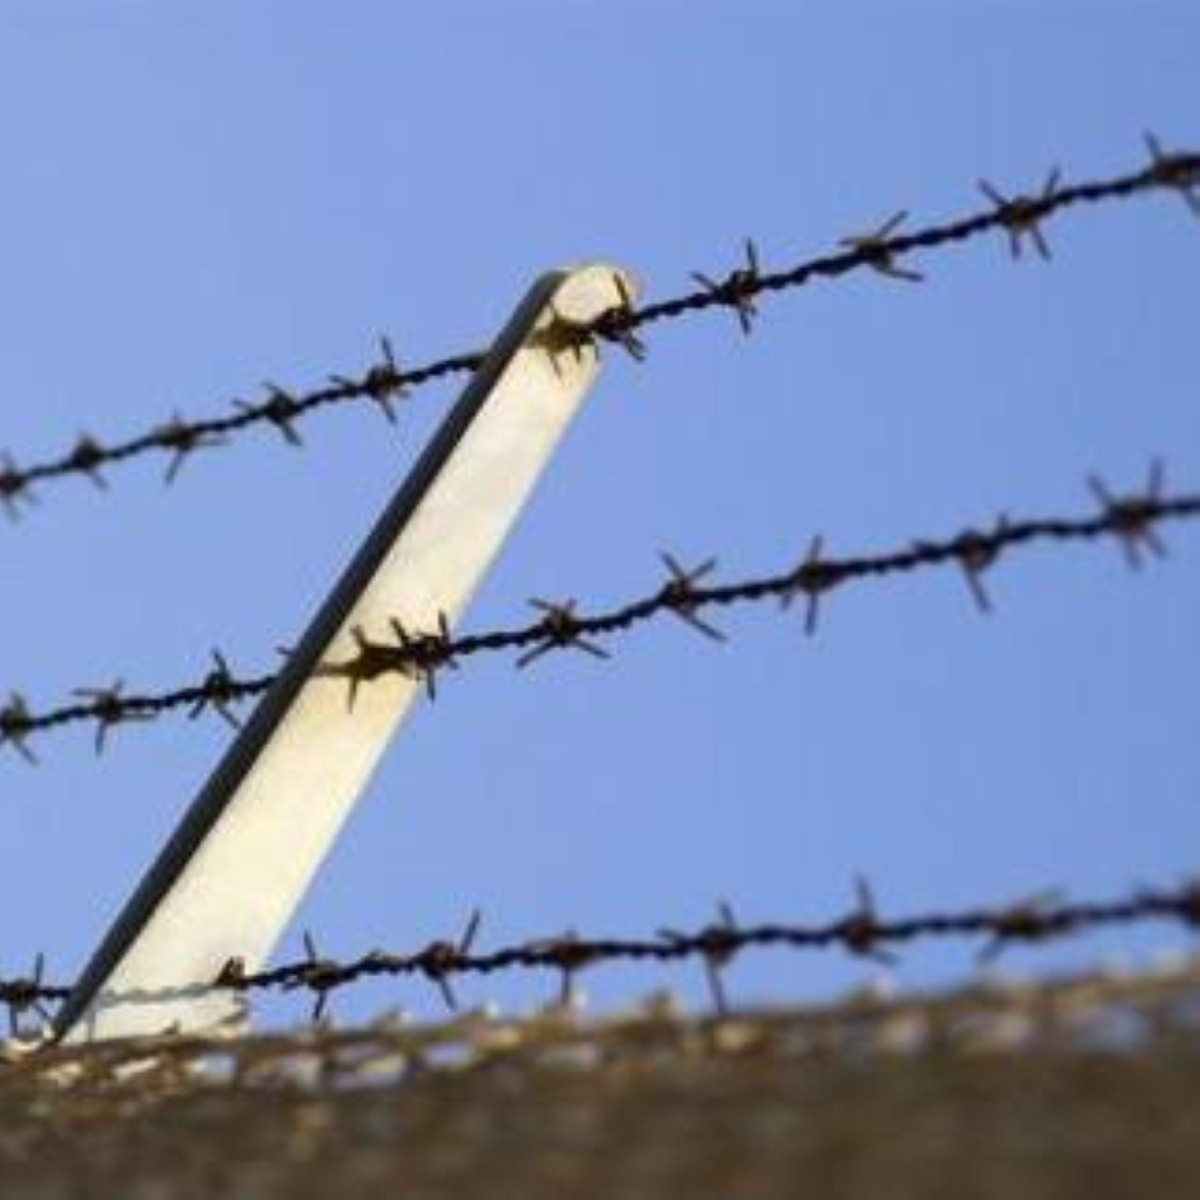 Prisoners must prove they are no longer a threat to the public before they are released